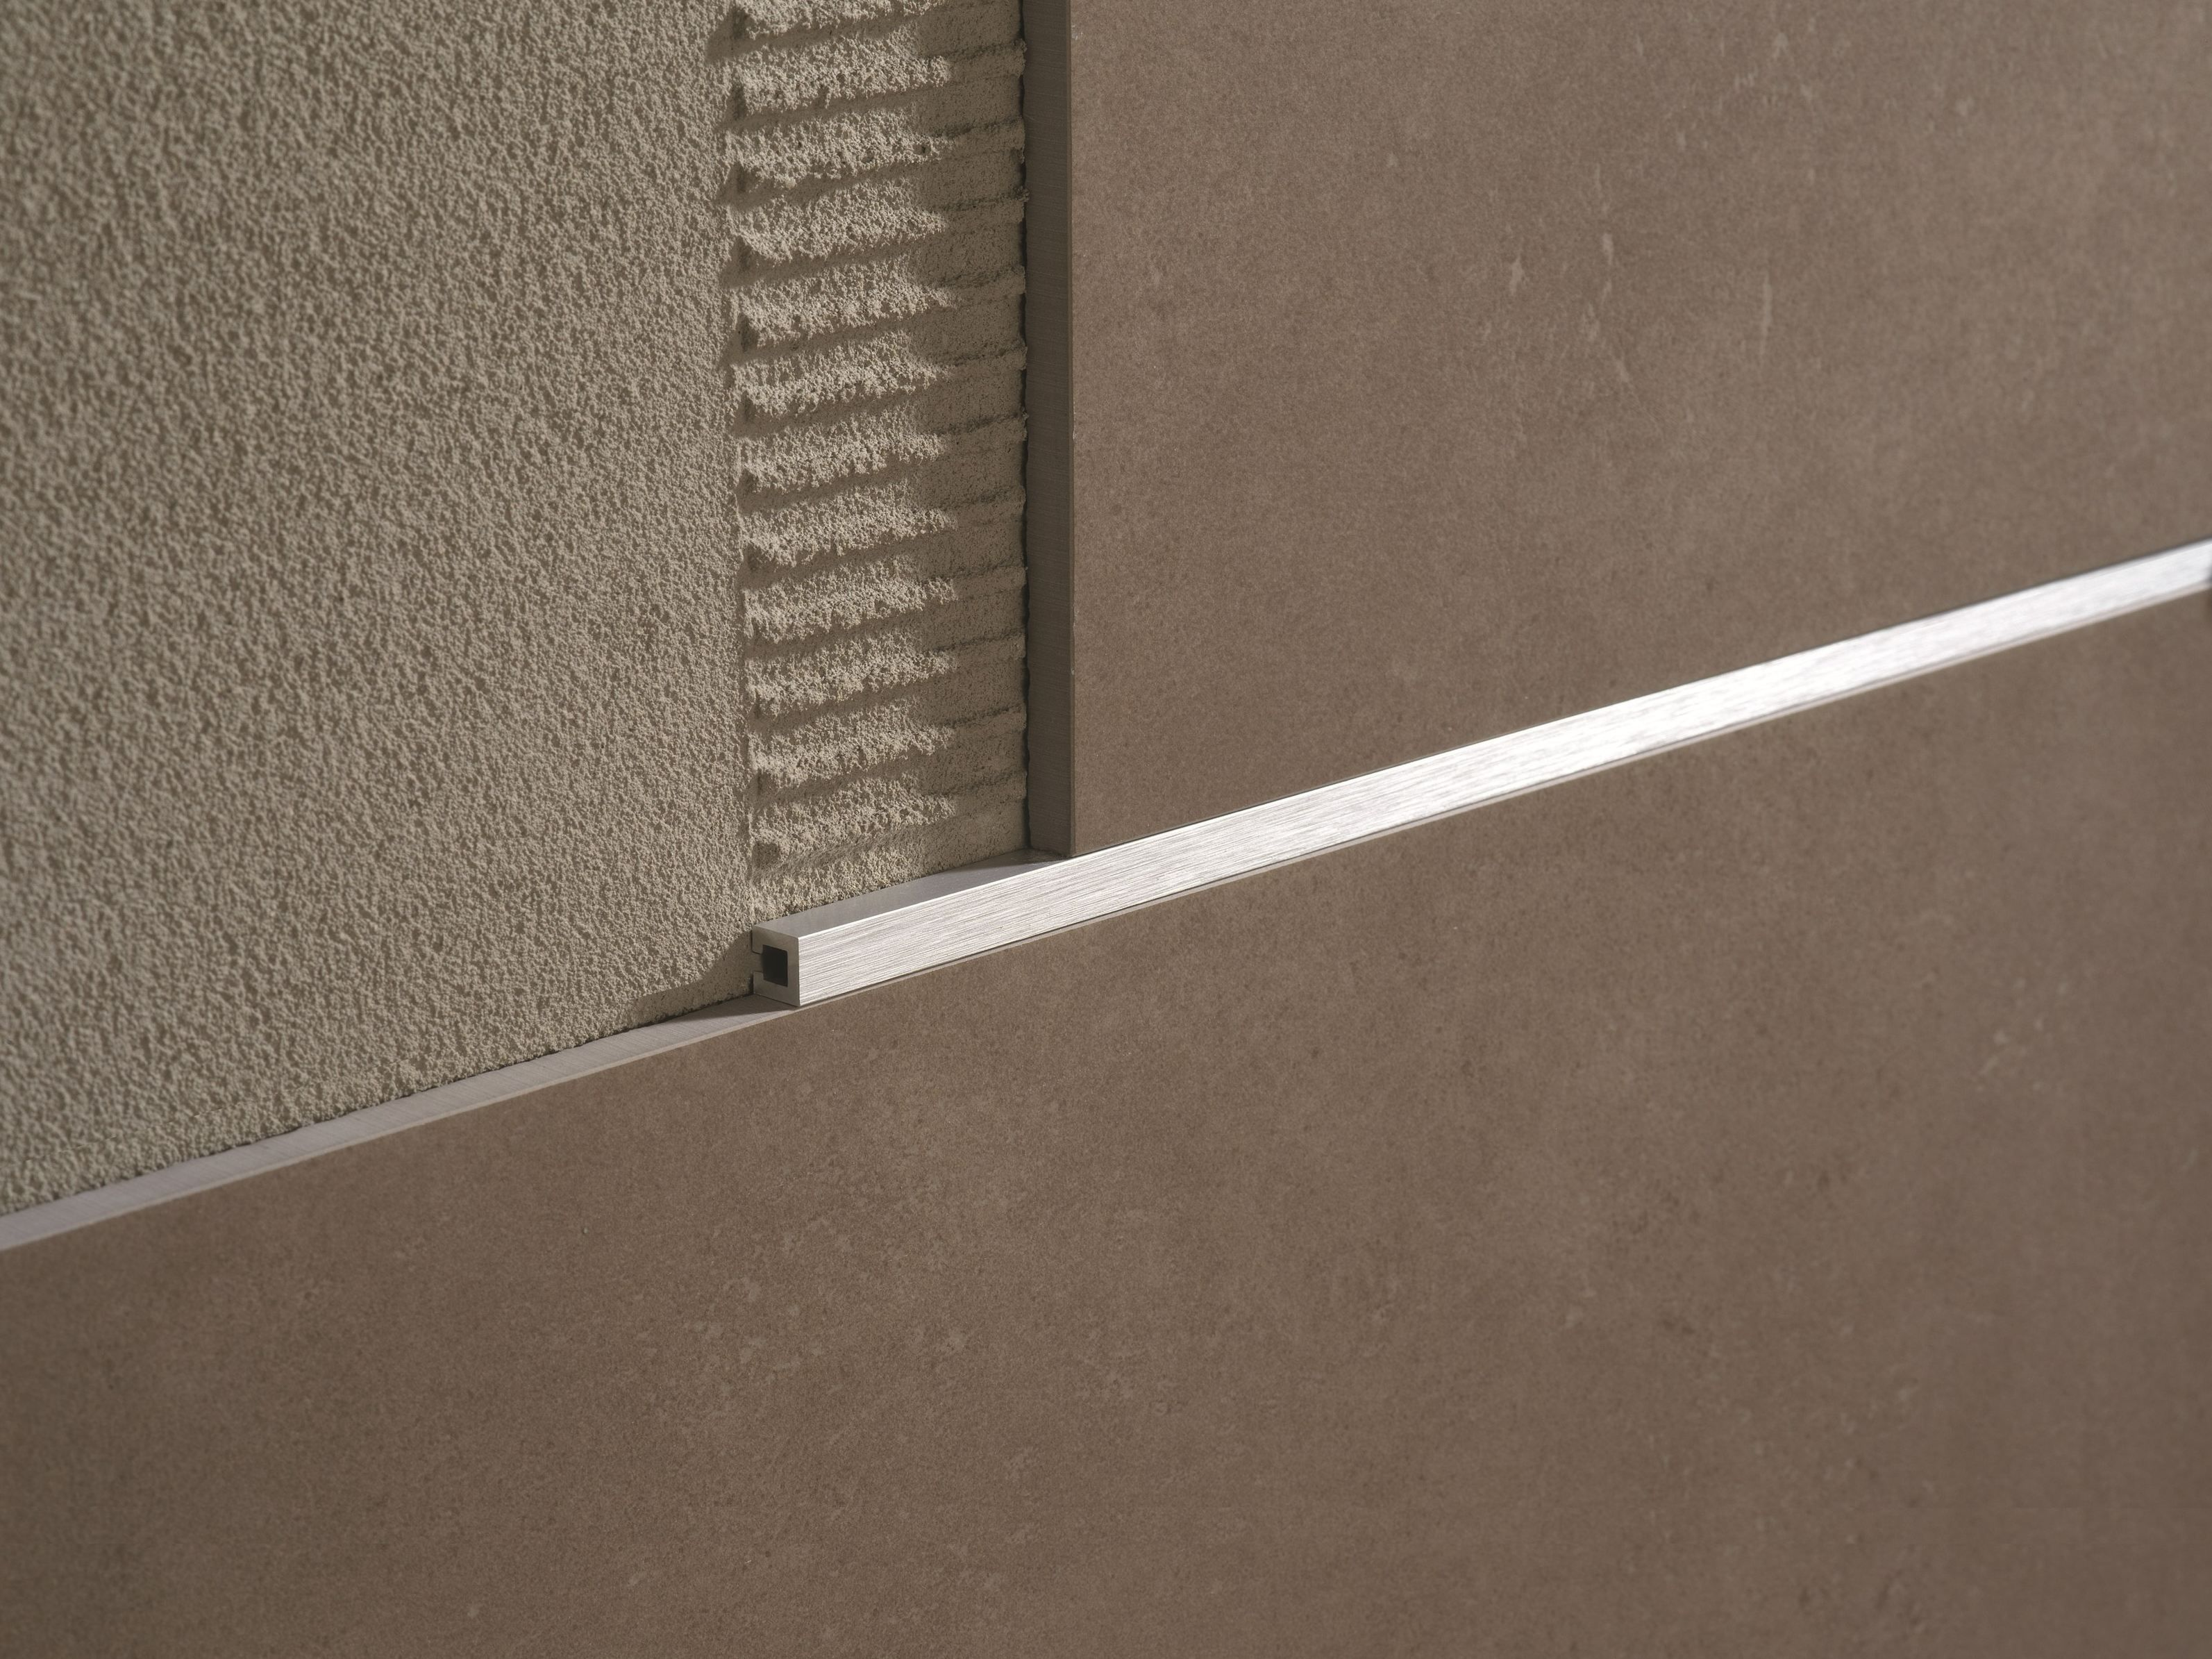 Decorative aluminium edge profile listec li 10 profilitec decorative aluminium edge profile listec li 10 profilitec floor tile dailygadgetfo Gallery